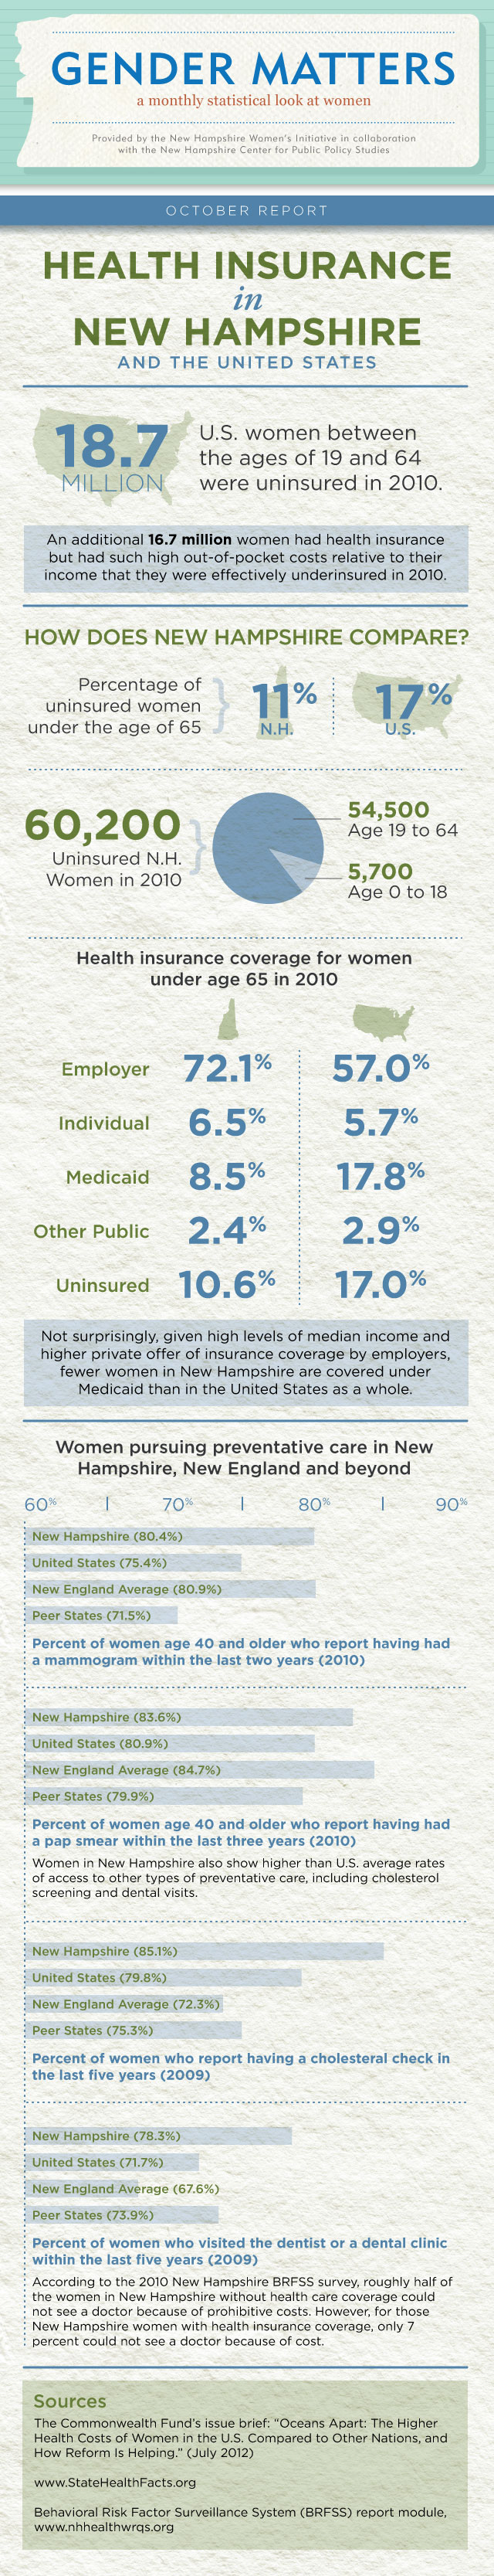 Gender Matters: Health Insurance in NH and the US